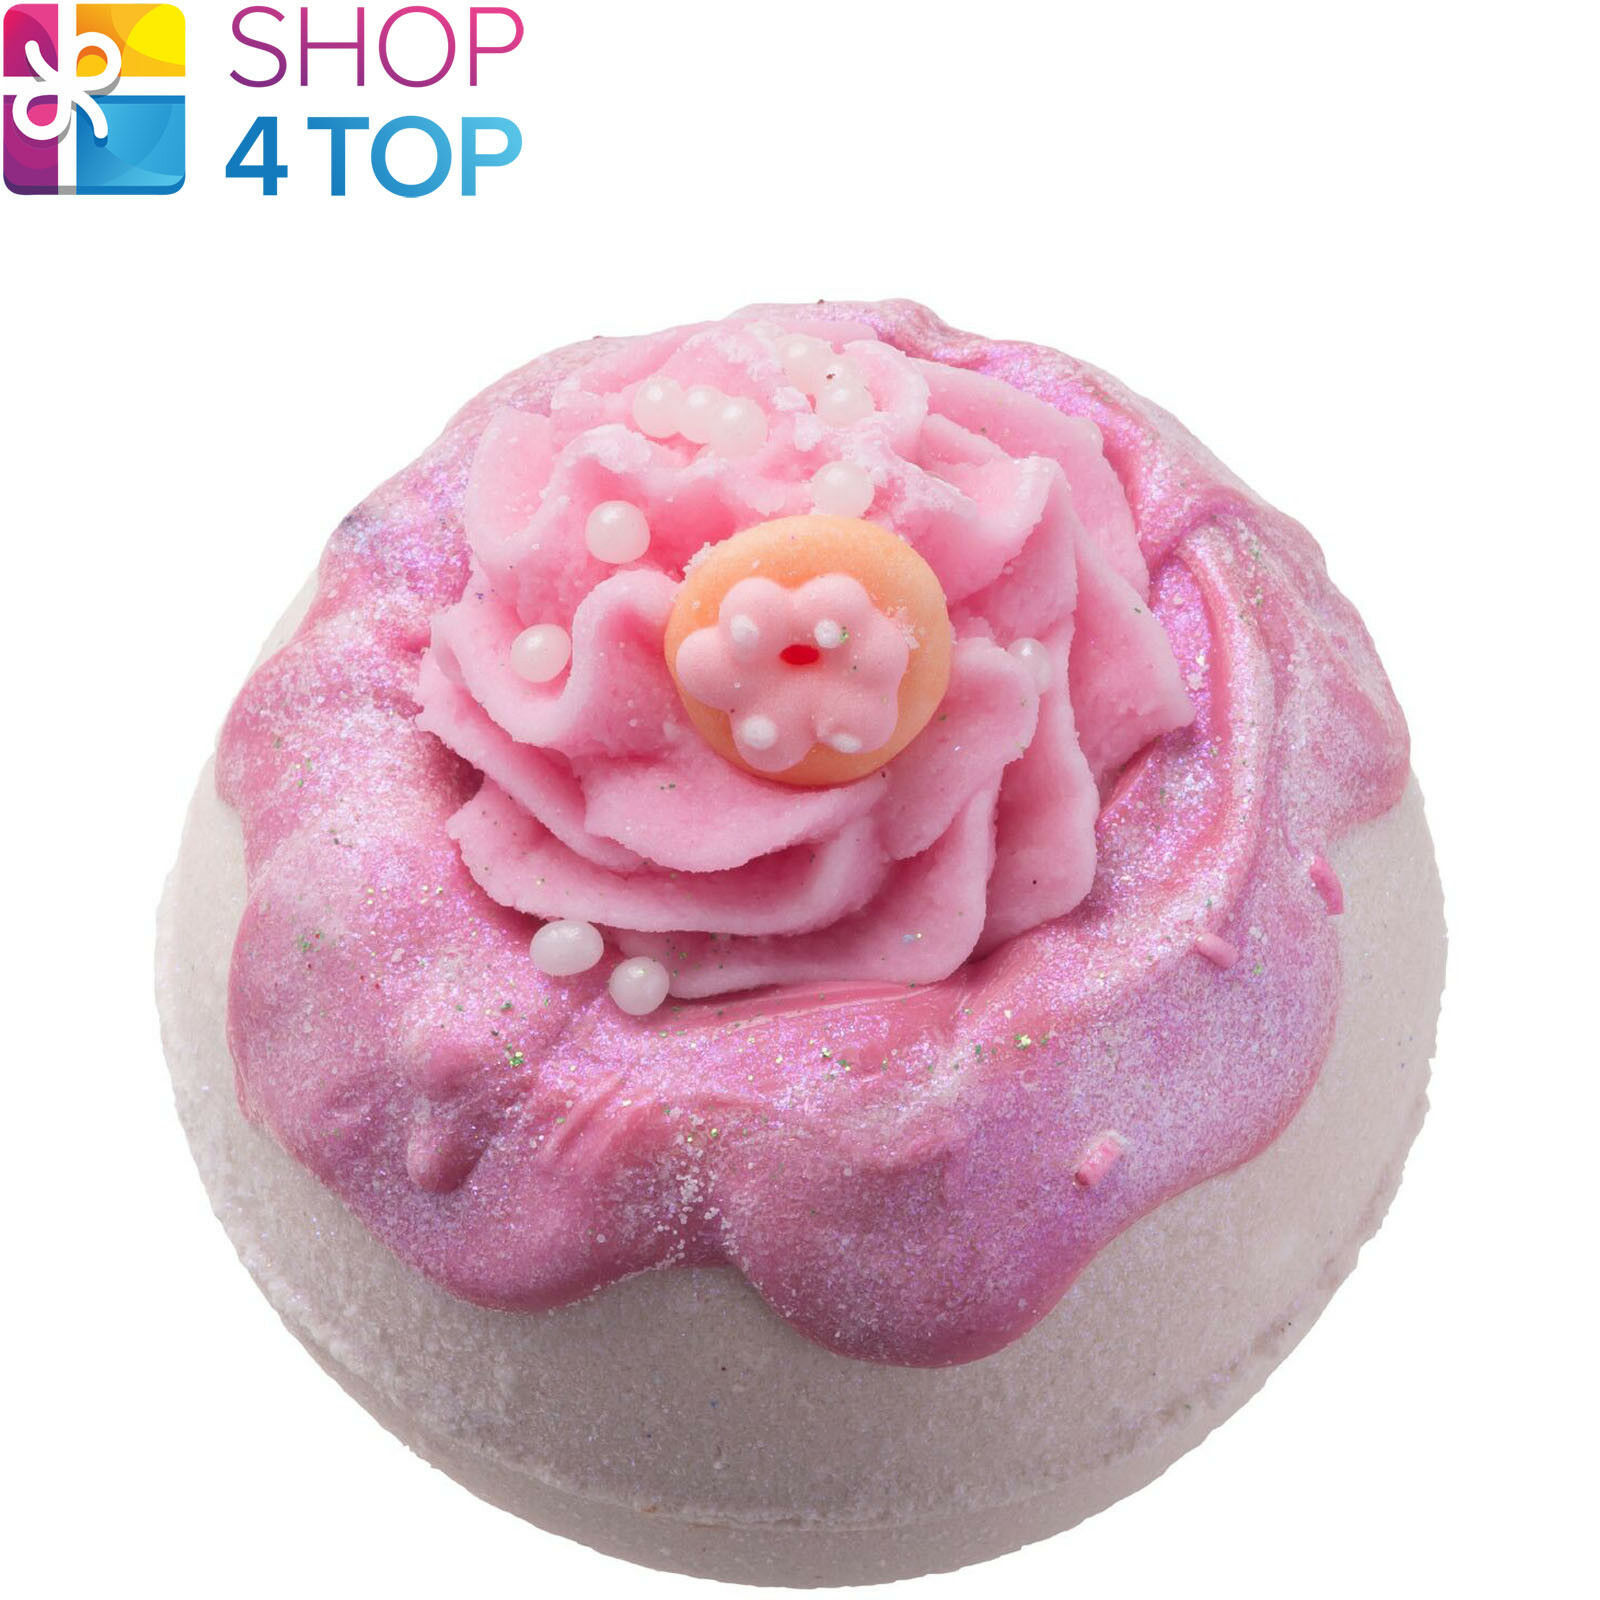 Primary image for GLAZY FOR YOU BATH BLASTER BOMB COSMETICS DOUGHNUT HANDMADE NATURAL NEW